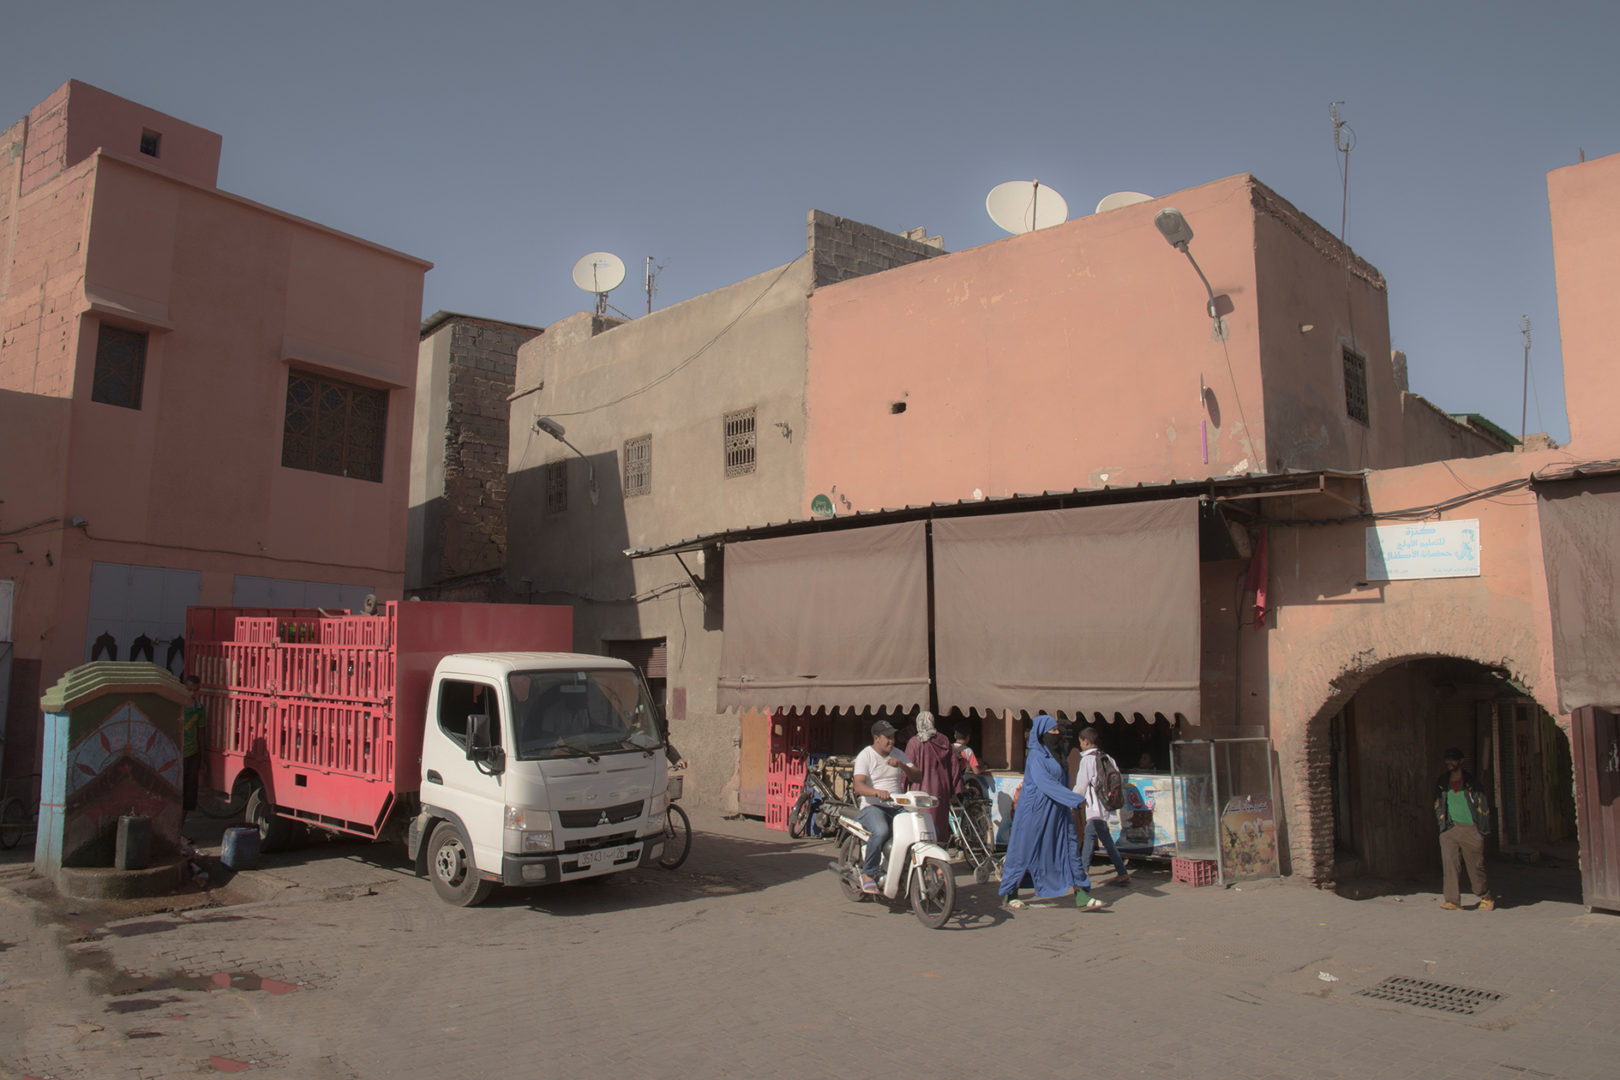 A red truck and a woman in blue - Marrakech